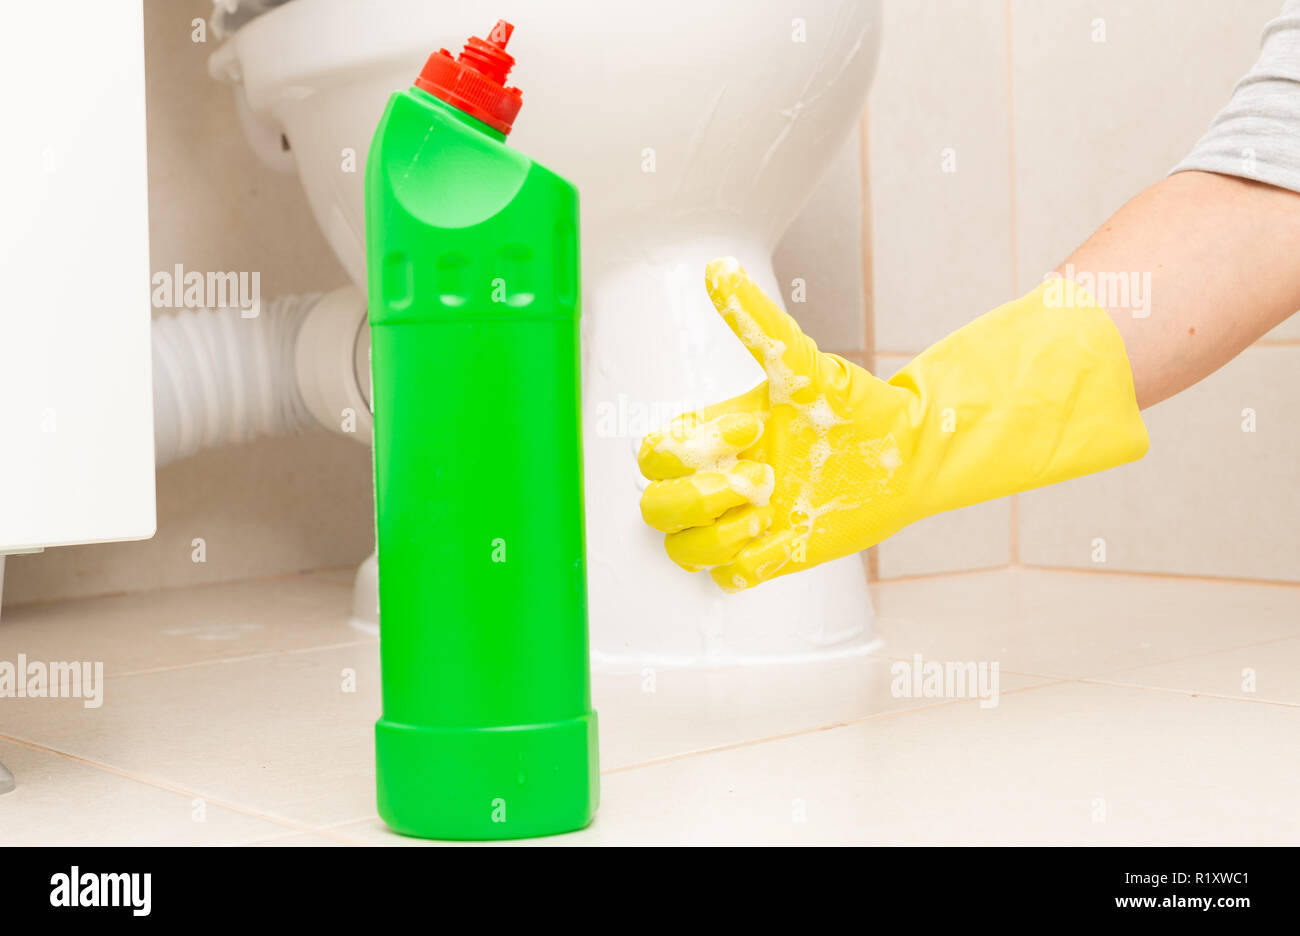 Yellow latex glove with thumb up as recommend gesture for green bottle cleaning product - Stock Image